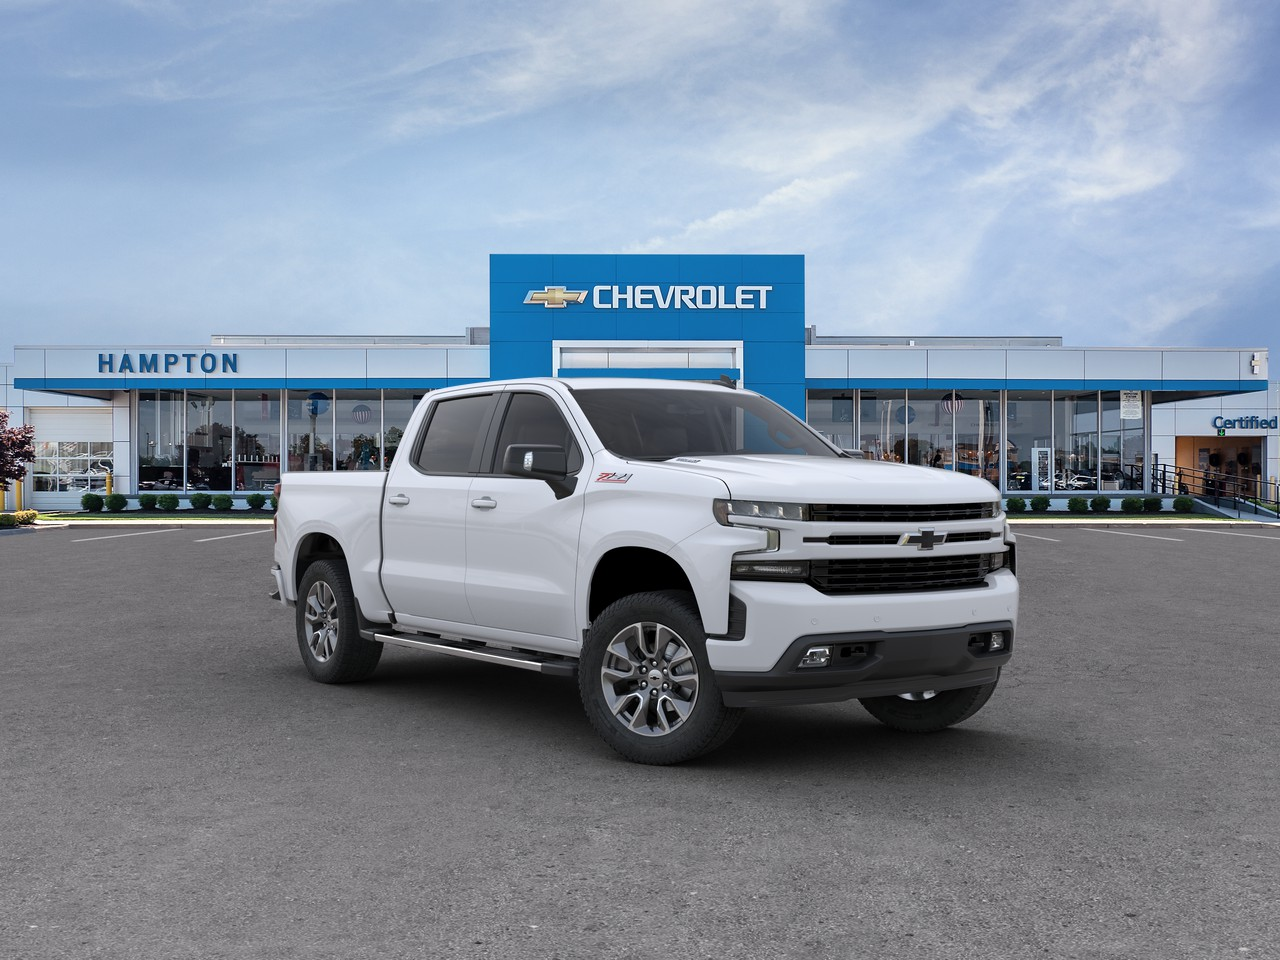 New 2020 Chevrolet Silverado 1500 RST FOUR WHEEL DRIVE Trucks